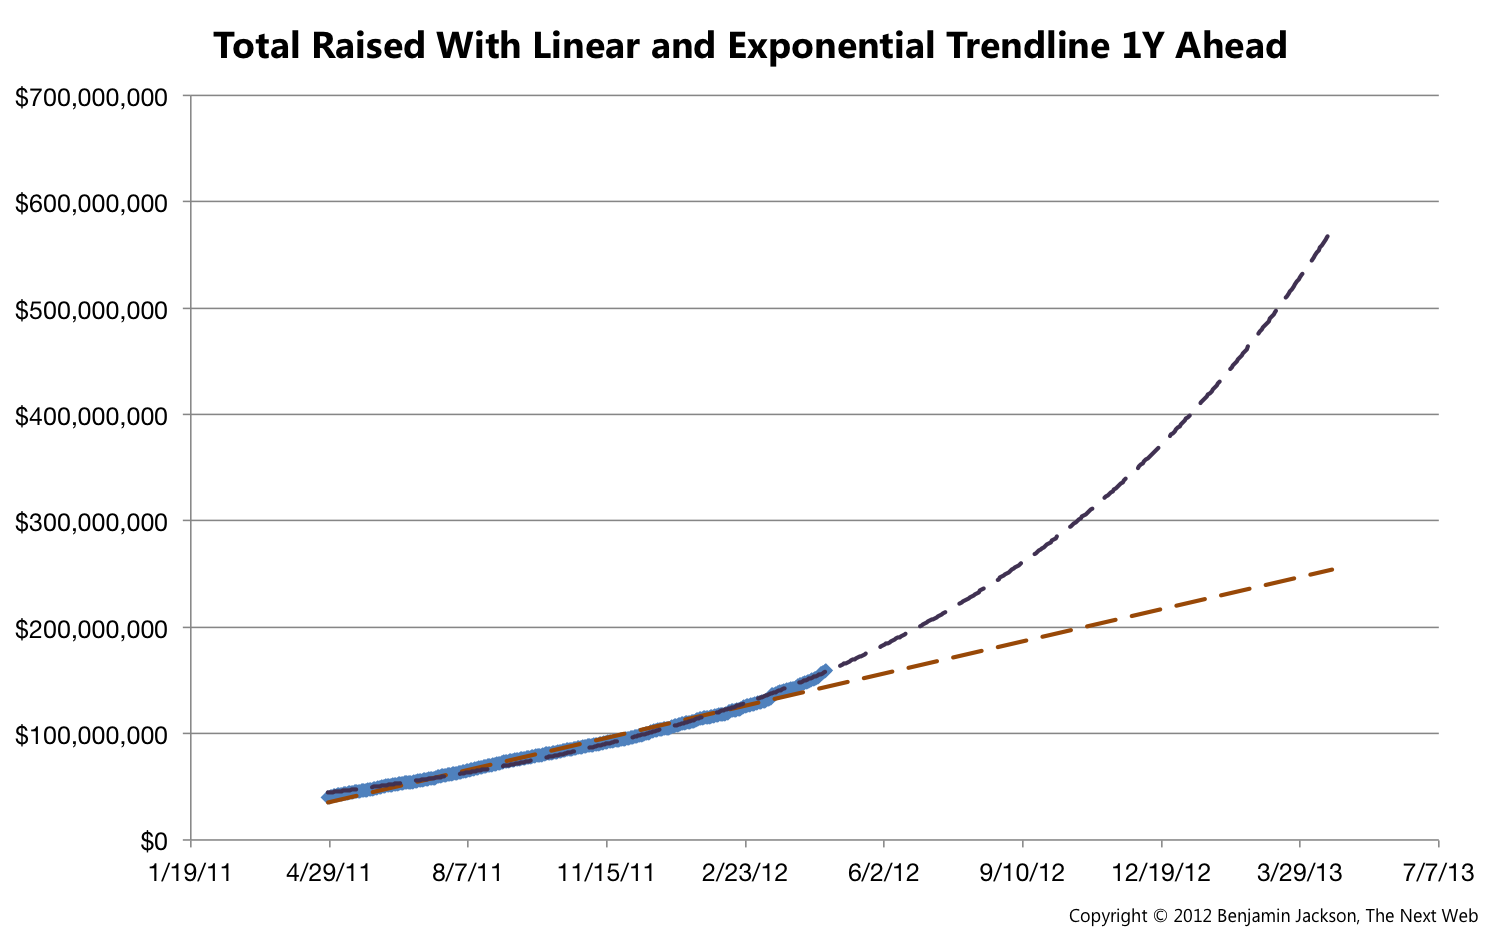 how to tell if a line is linear or exponential